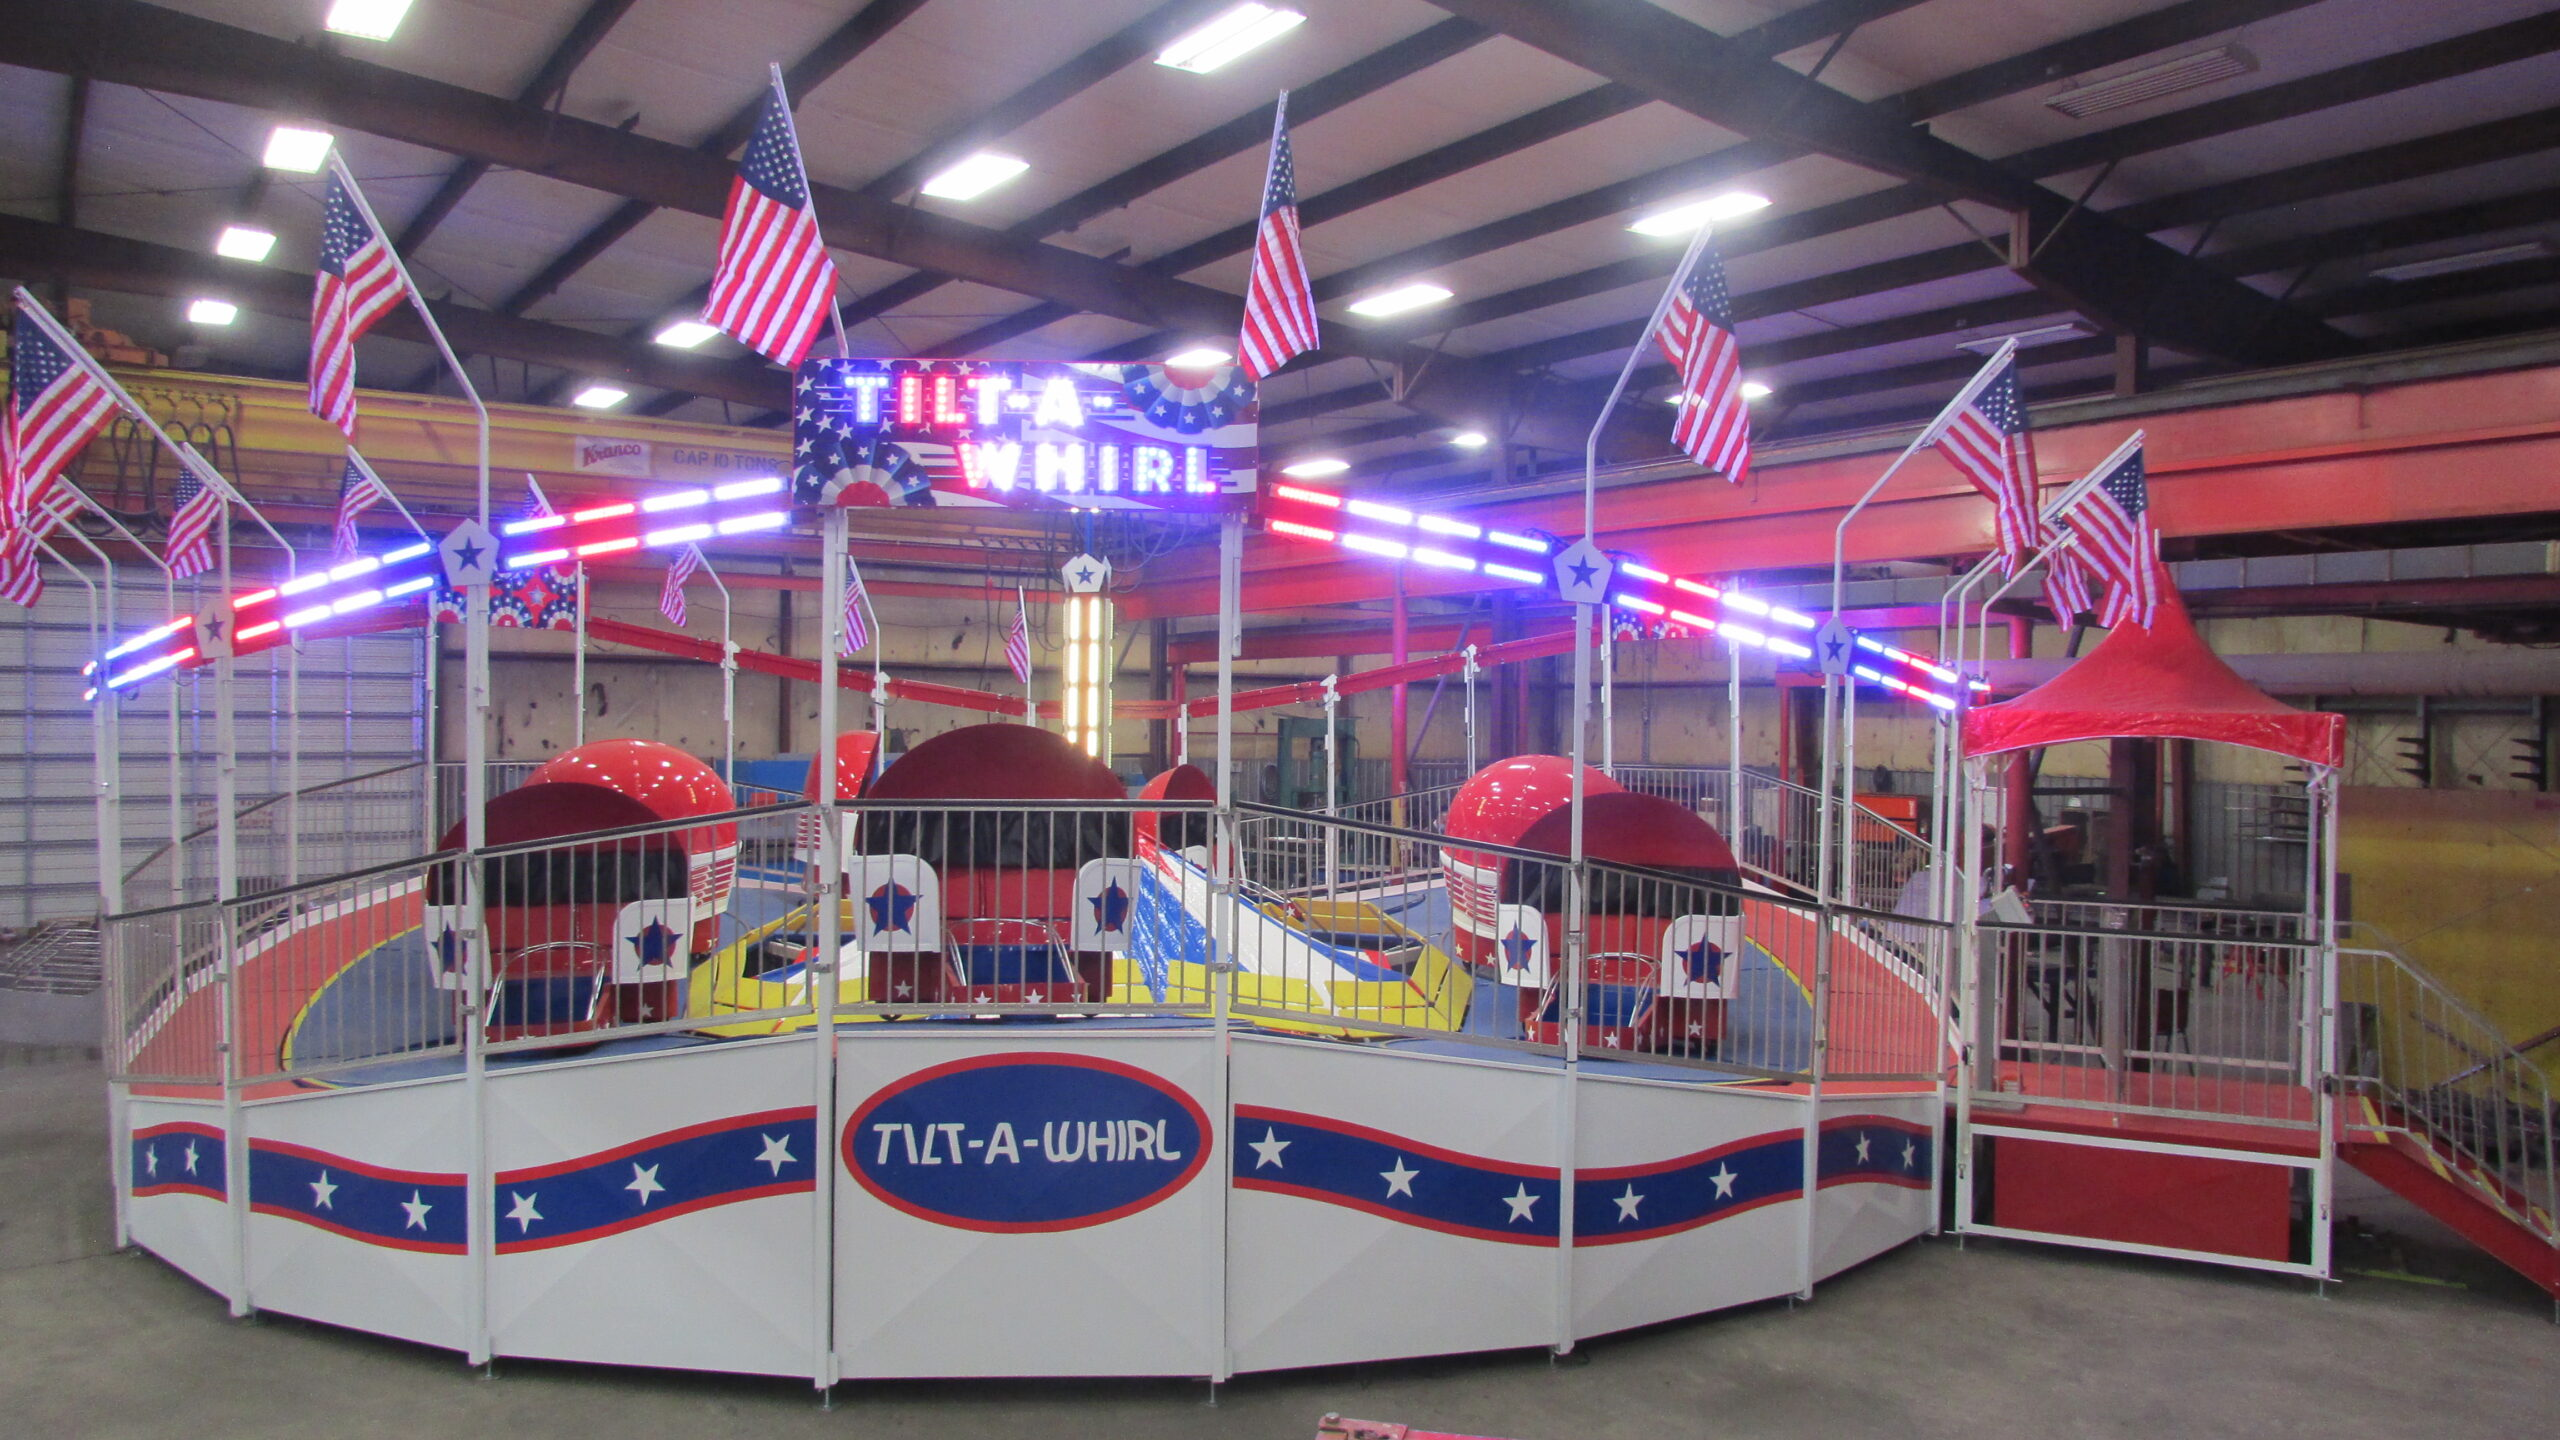 Larson International Fair Themed Tilt-A-Whirl